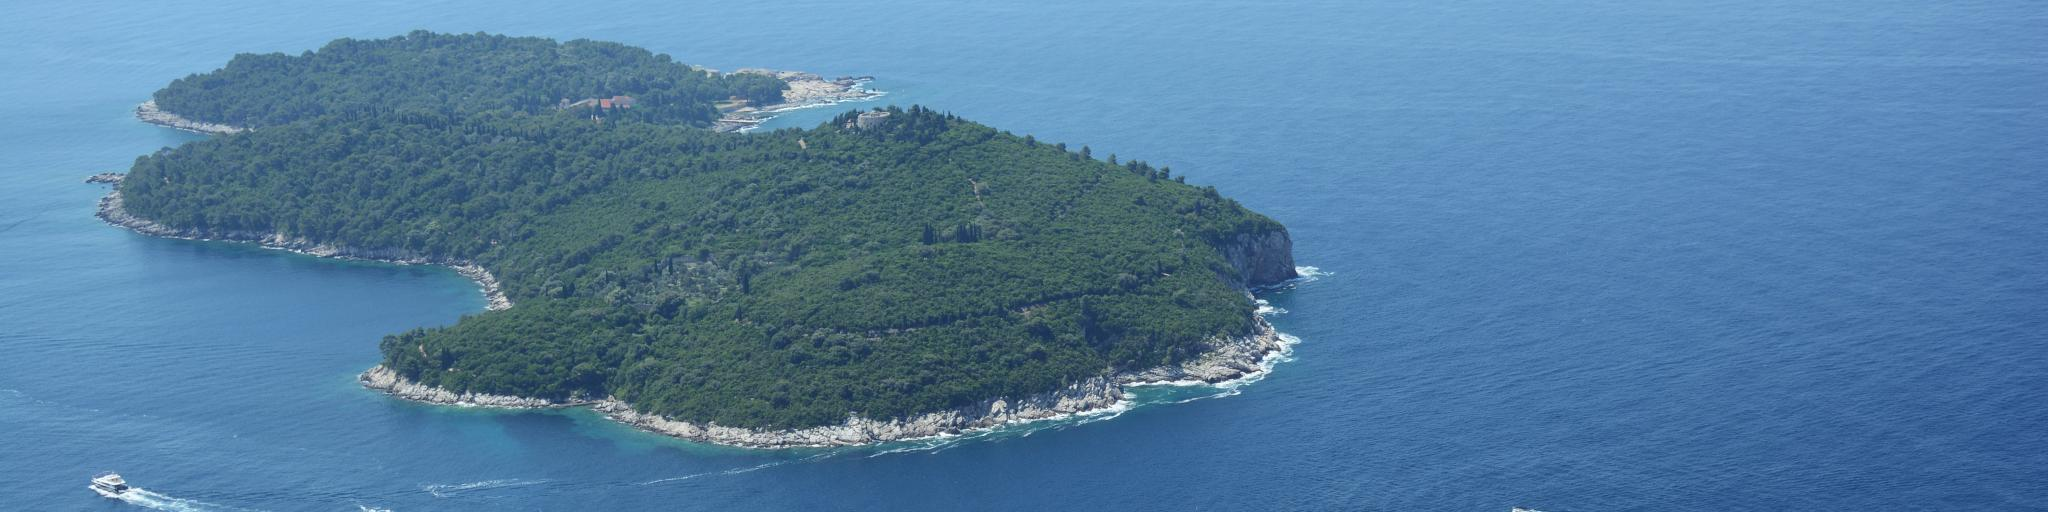 An aerial view of the island of Lokrum just off the coast of Dubrovnik